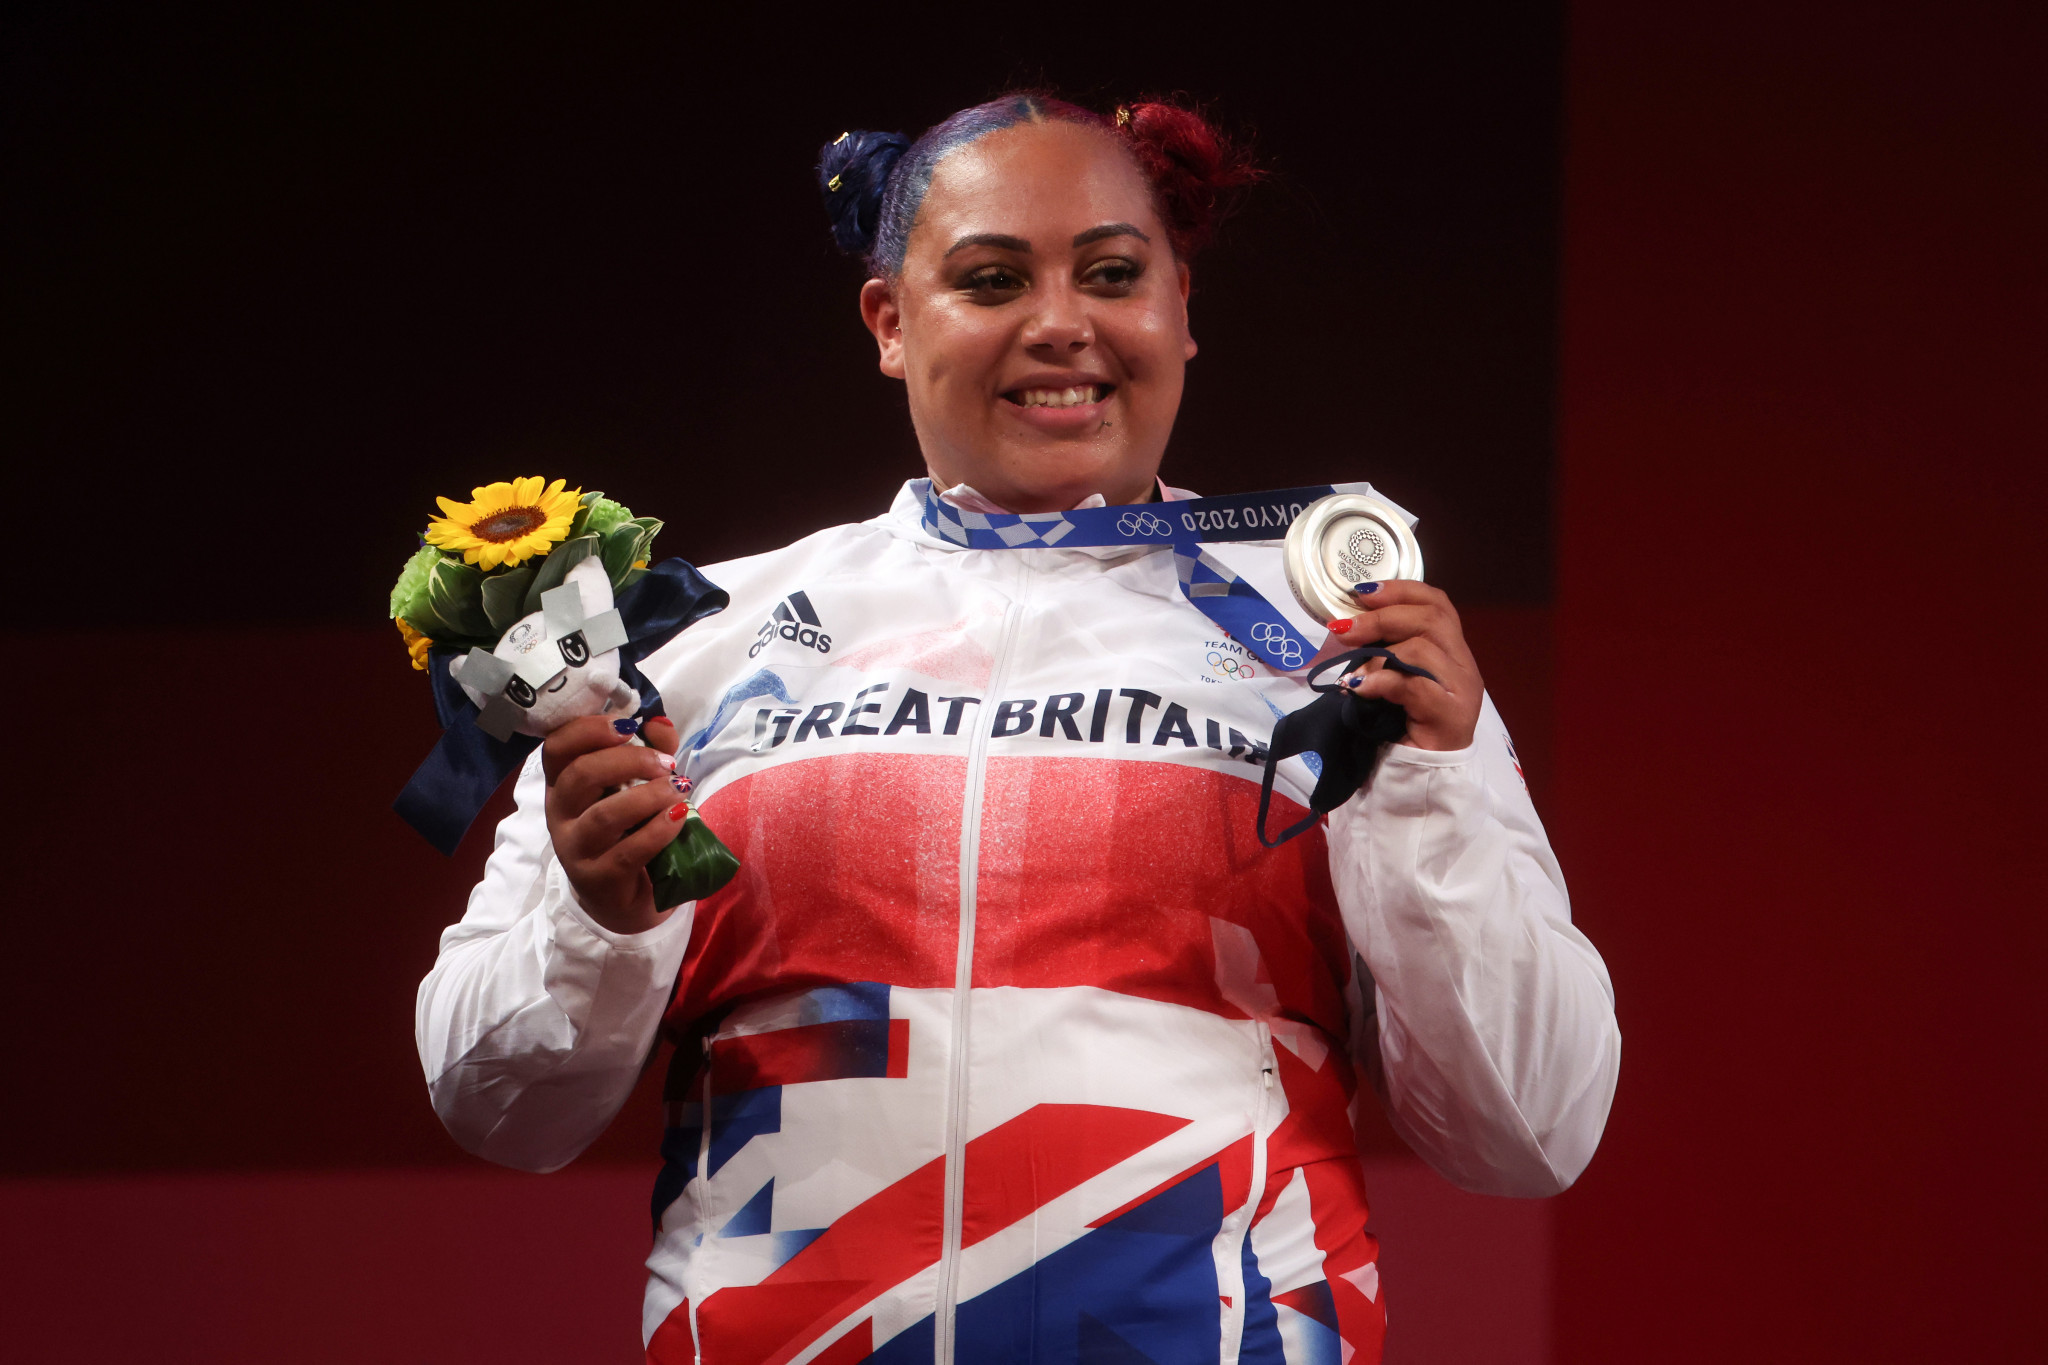 """Weightlifter Emily Campbell """"brings back the bling"""" as Britain's first female Olympic medallist"""